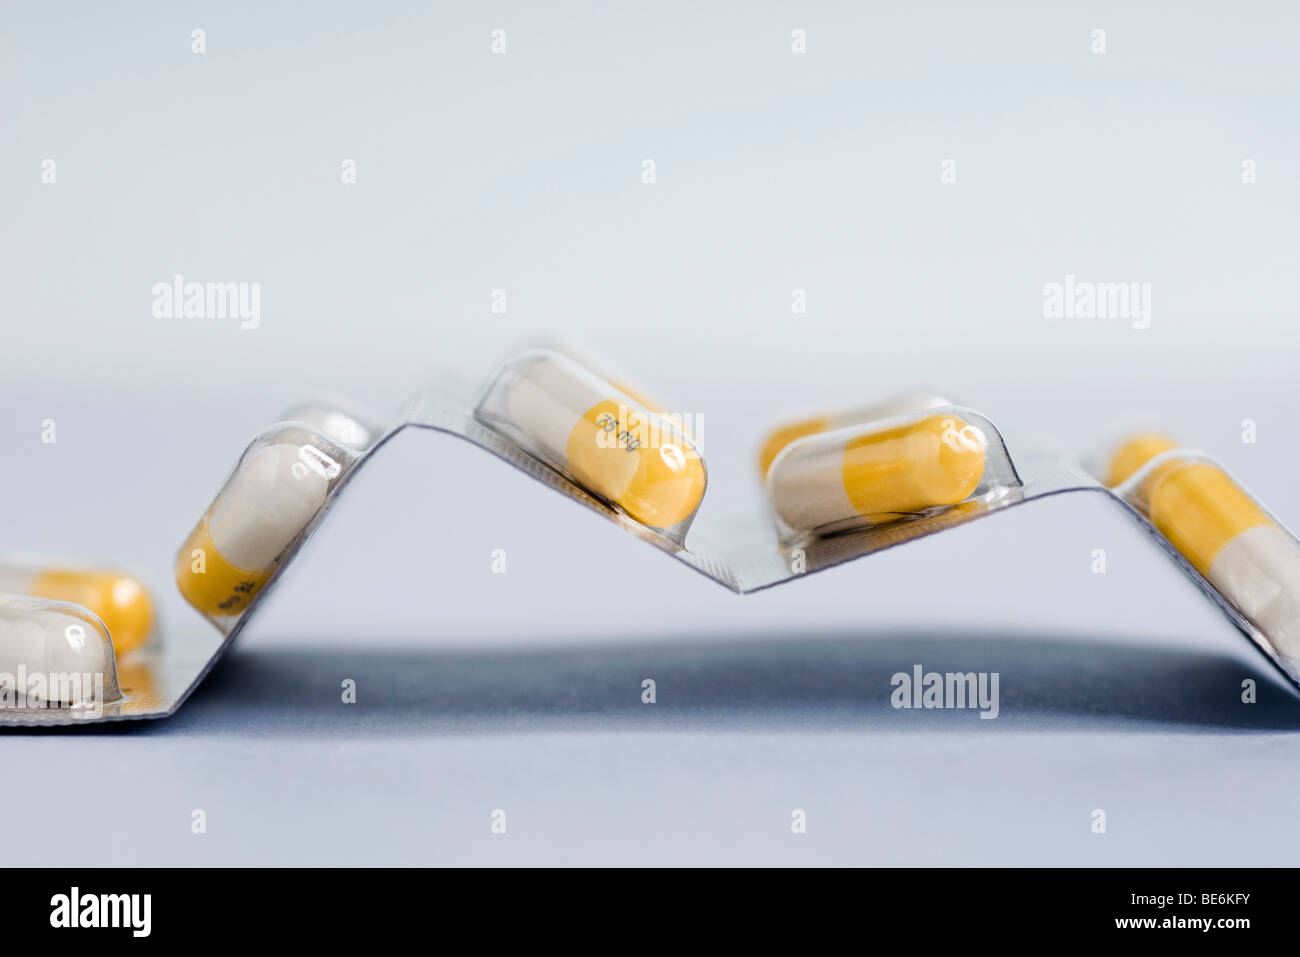 Blister pack containing capsules of an antiviral drug (a neuraminidase inhibitor) used to treat H1N1 flu - Stock Image